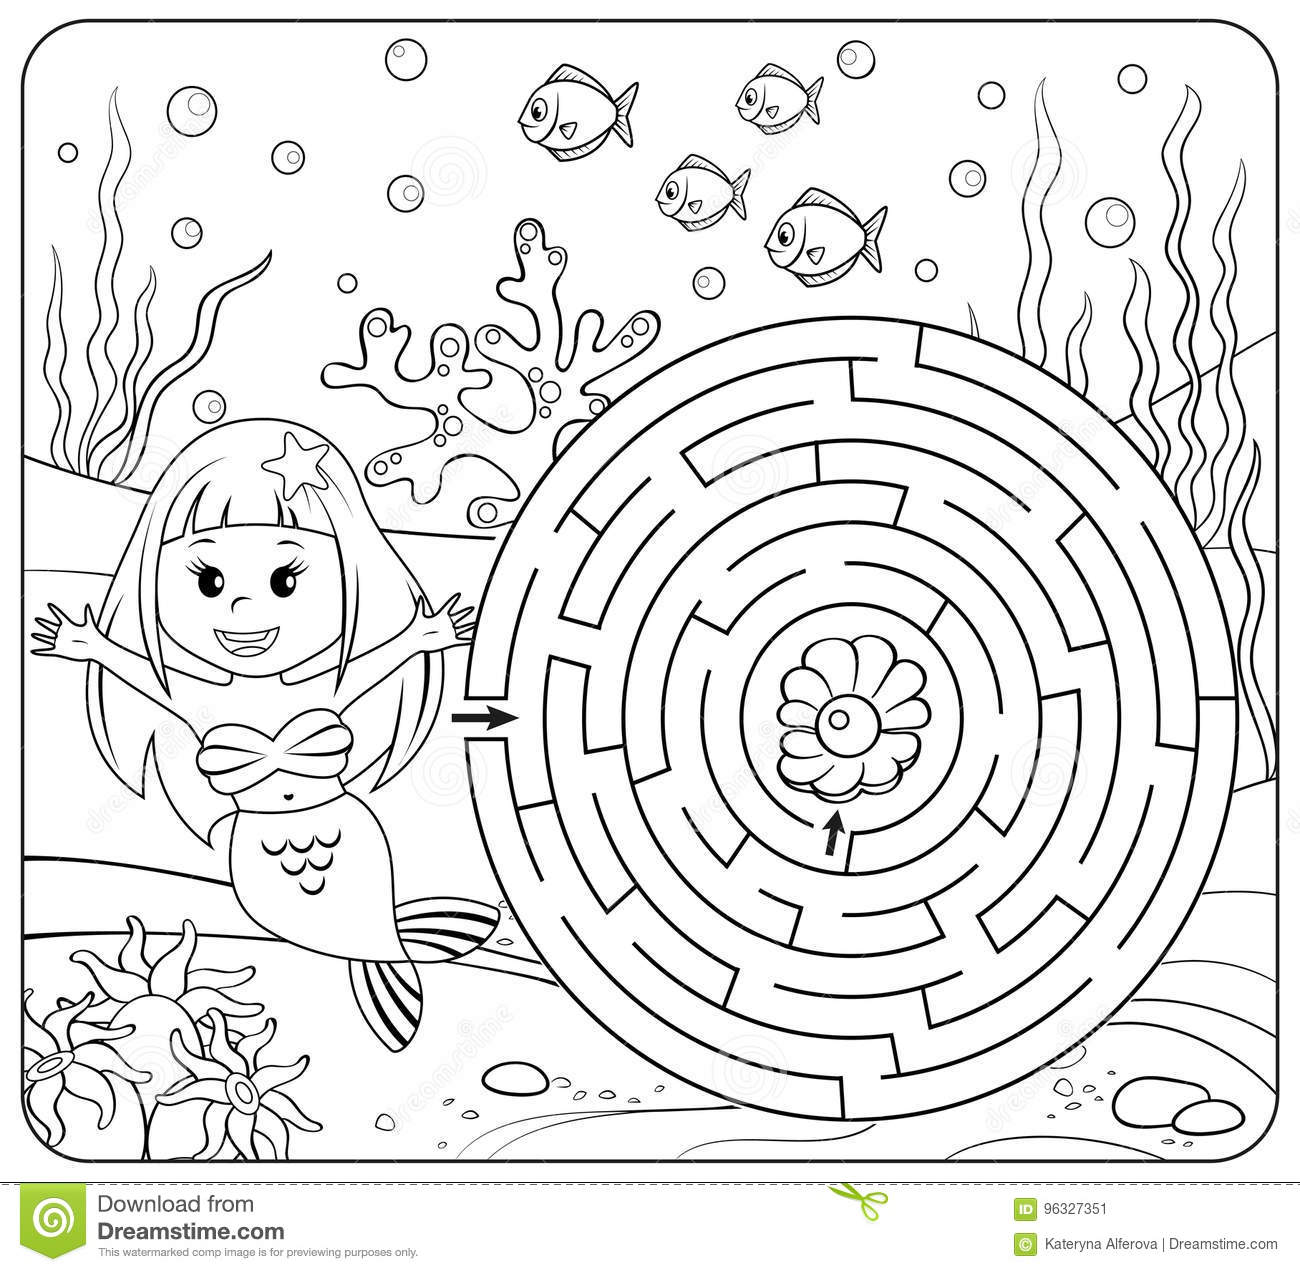 Help Mermaid Find Path To Pearl. Labyrinth. Maze Game For